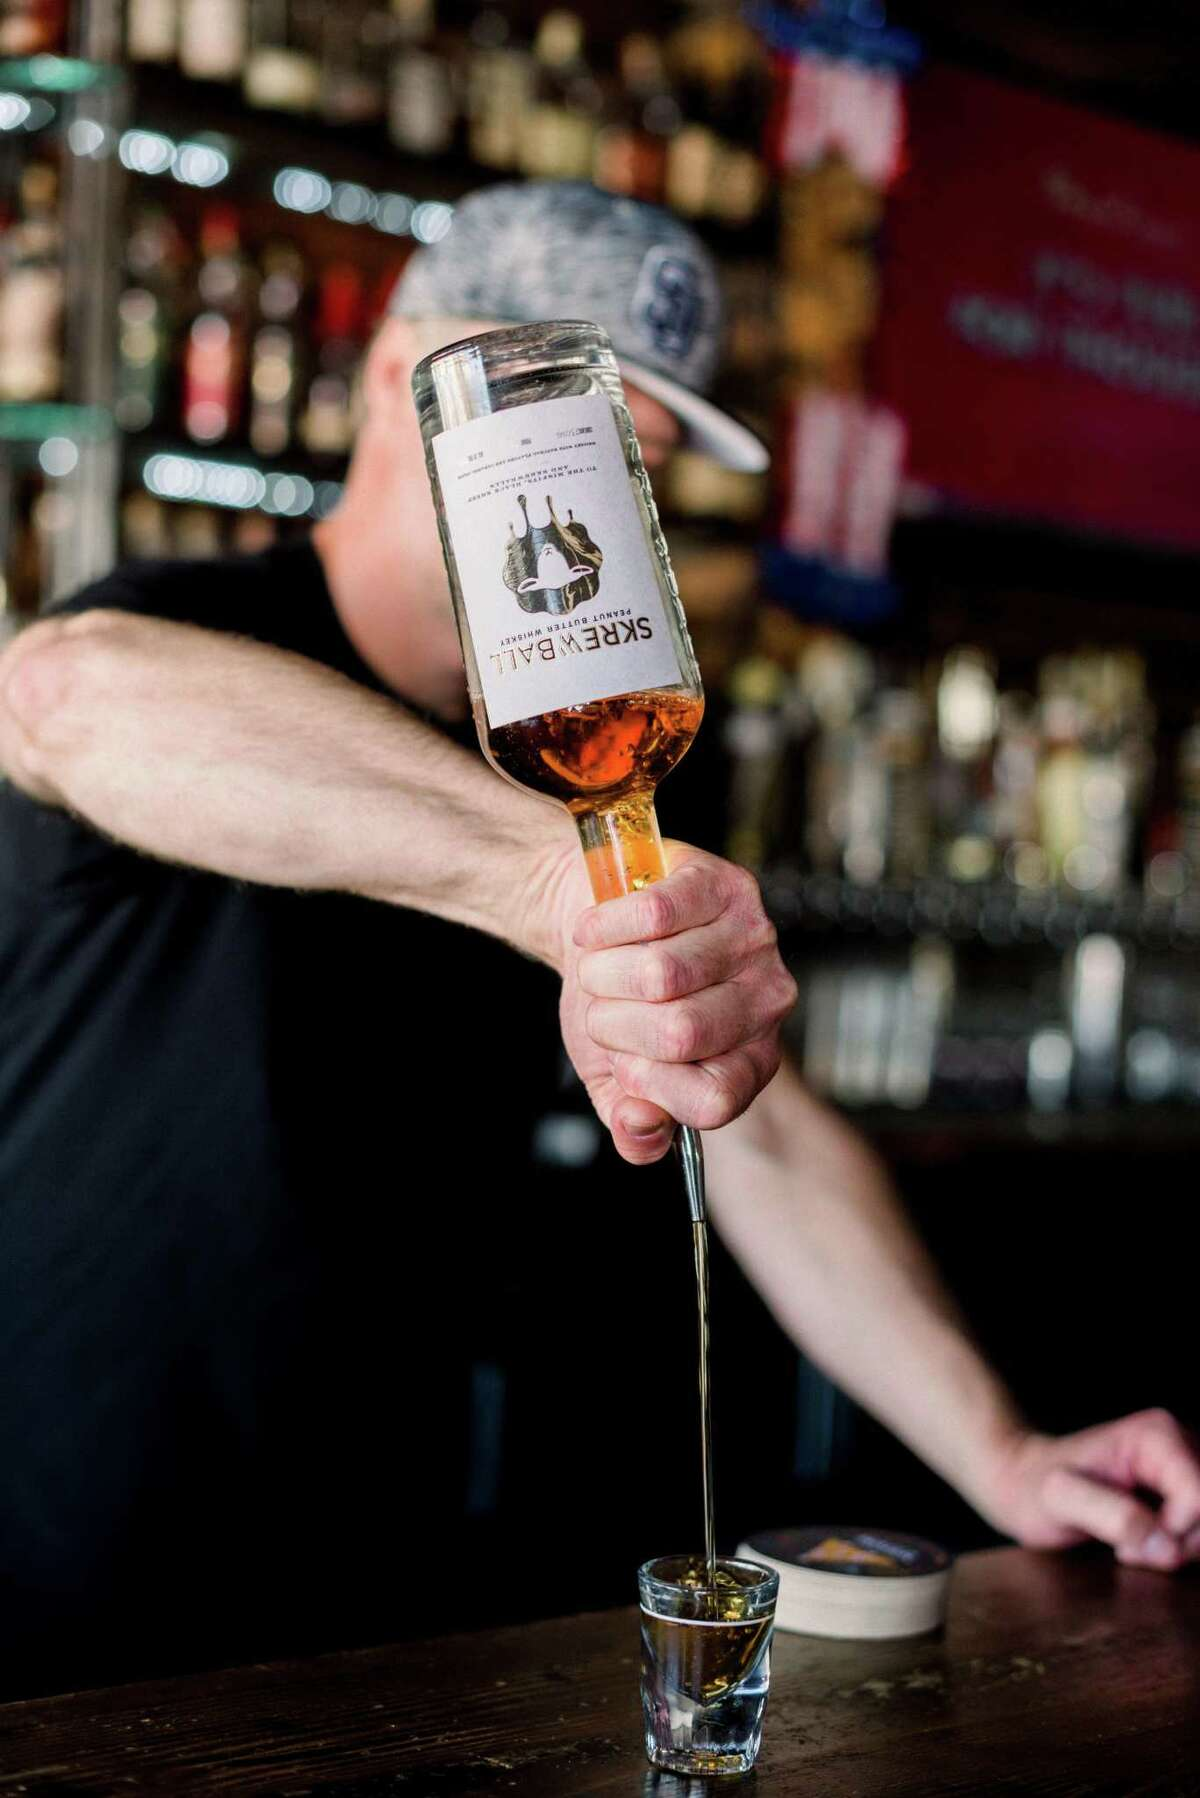 Skrewball Peanut Butter Whiskey is now available in Texas liquor stores and bars.